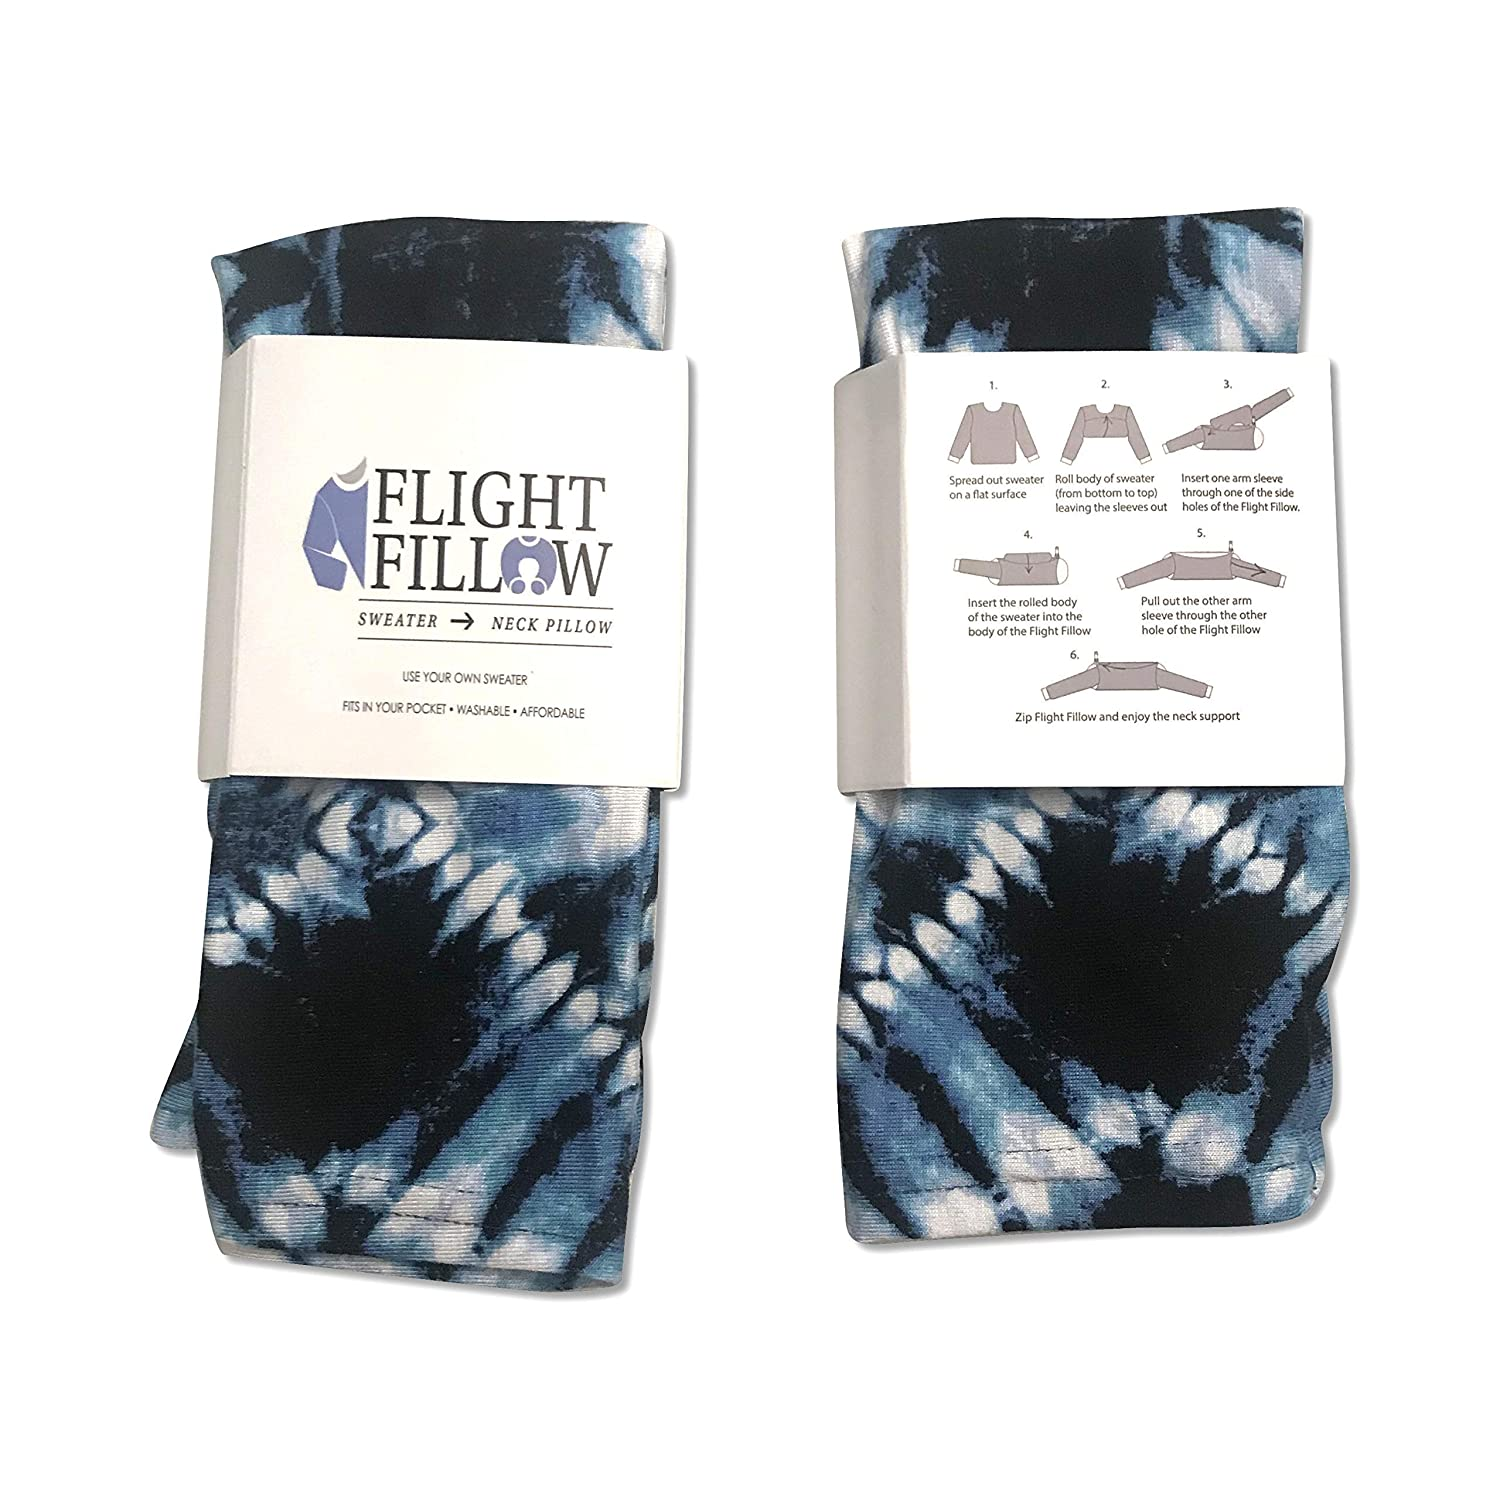 The Tye Dye Patterned Flight Fillow travel product recommended by Georgia McKinney on Lifney.